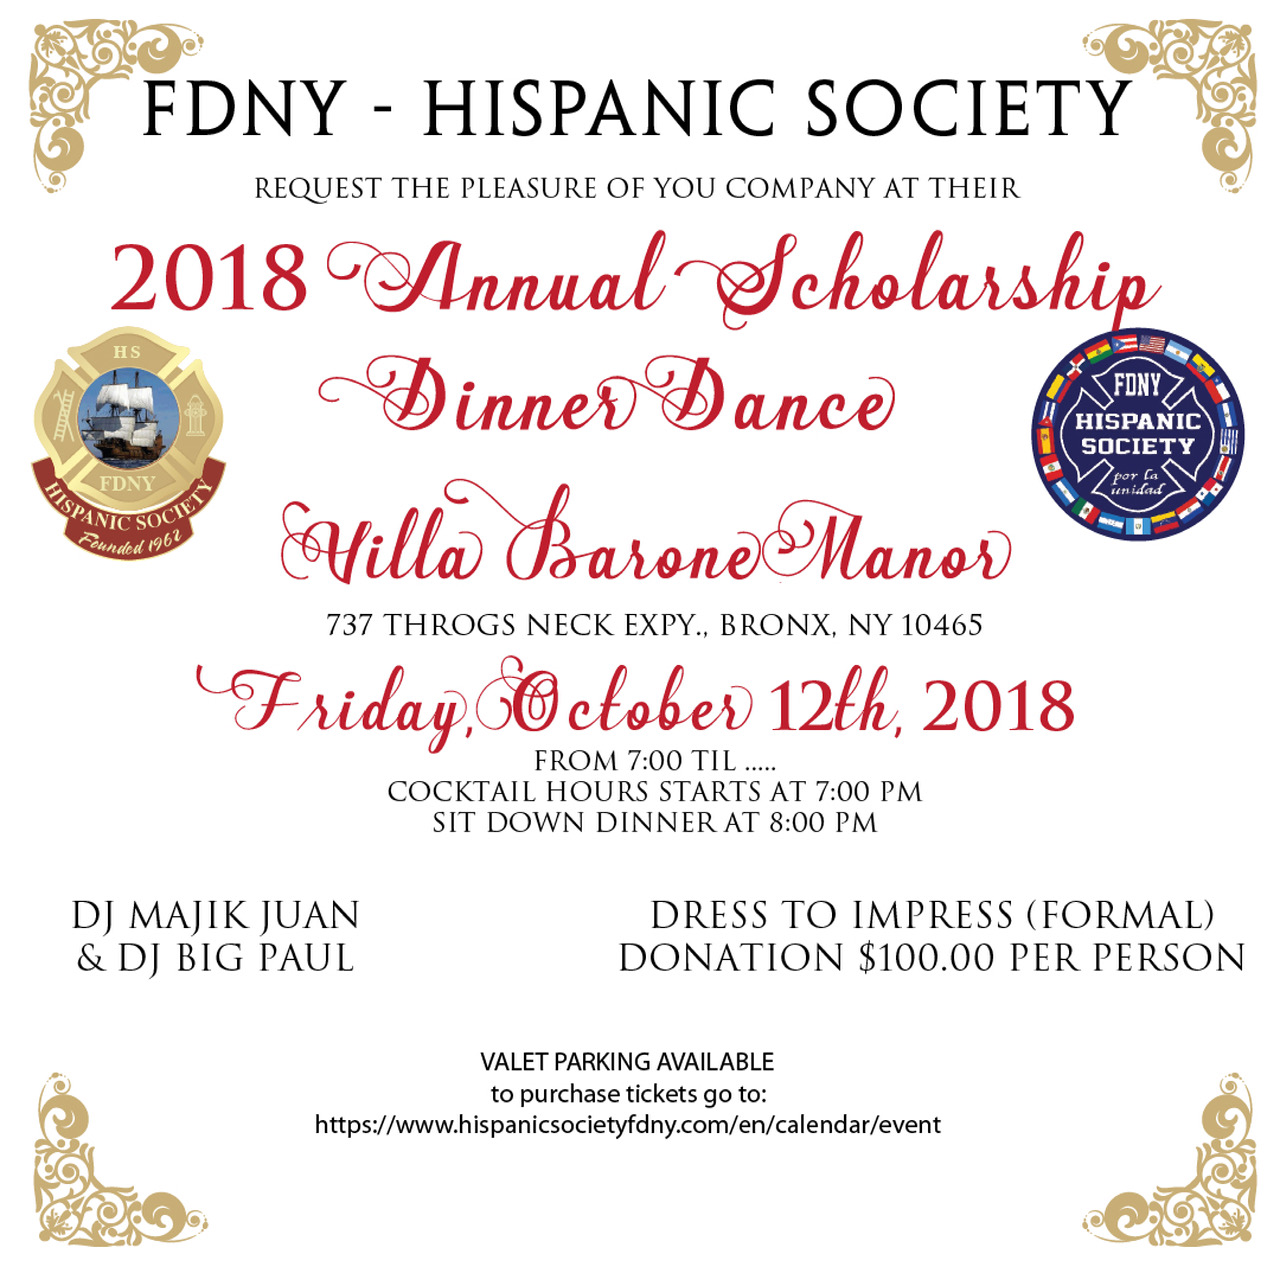 FDNK Hispanic Dance 2018 invitation IG